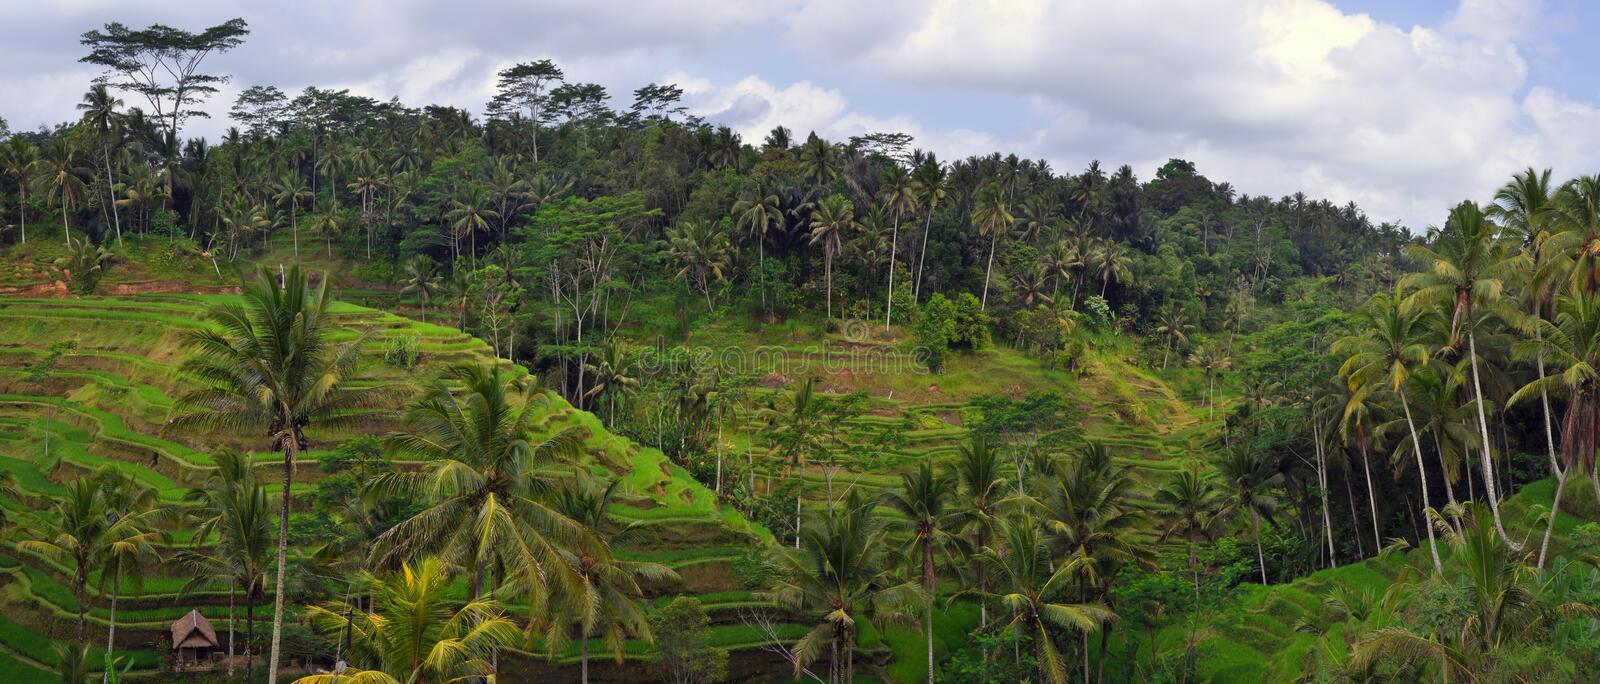 Panorama of Terraced Rice Fields in Bali royalty free stock photo